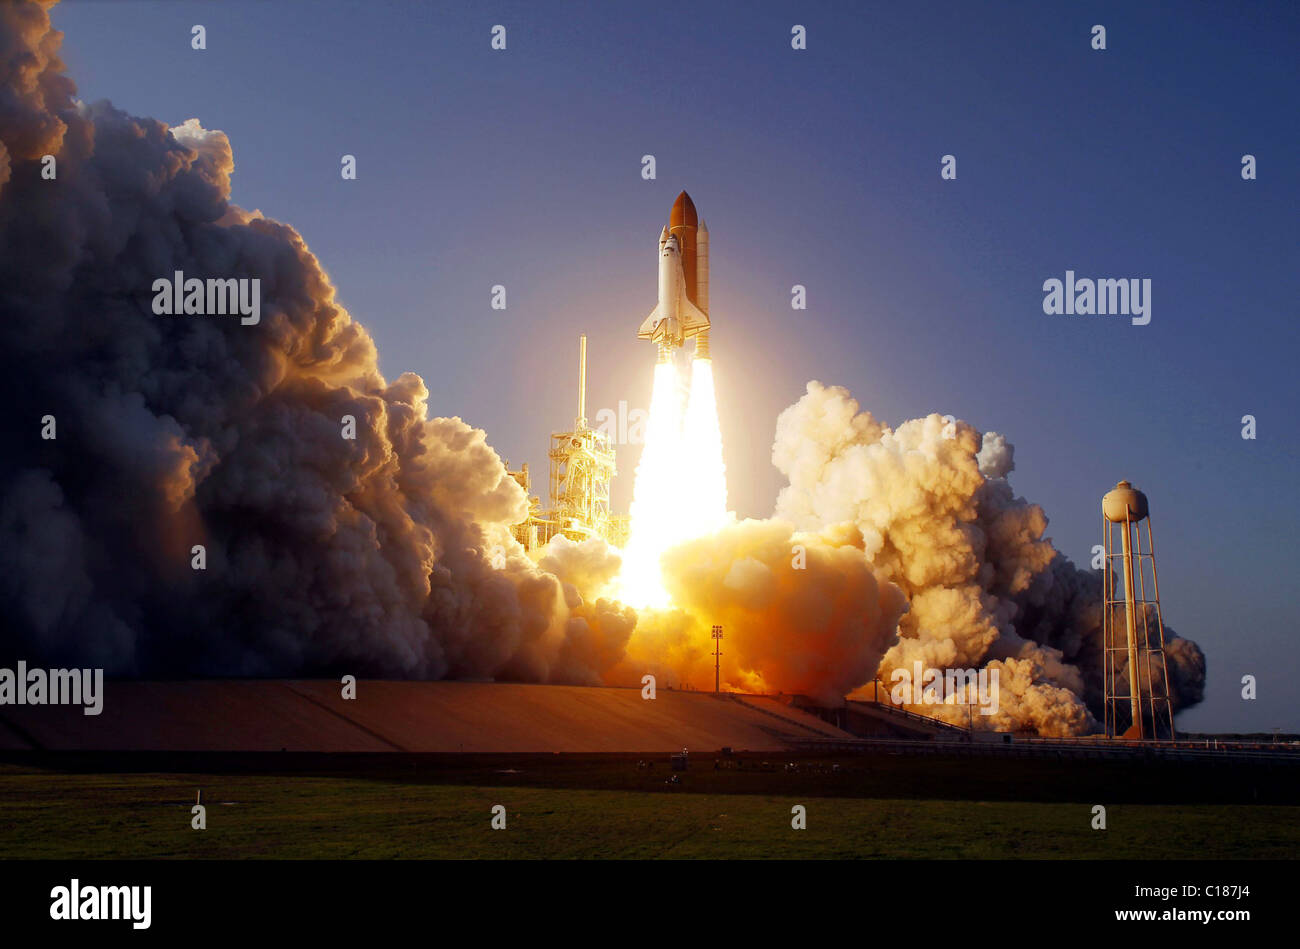 Space Shuttle Discovery, Launch of the STS-133 mission - Stock Image